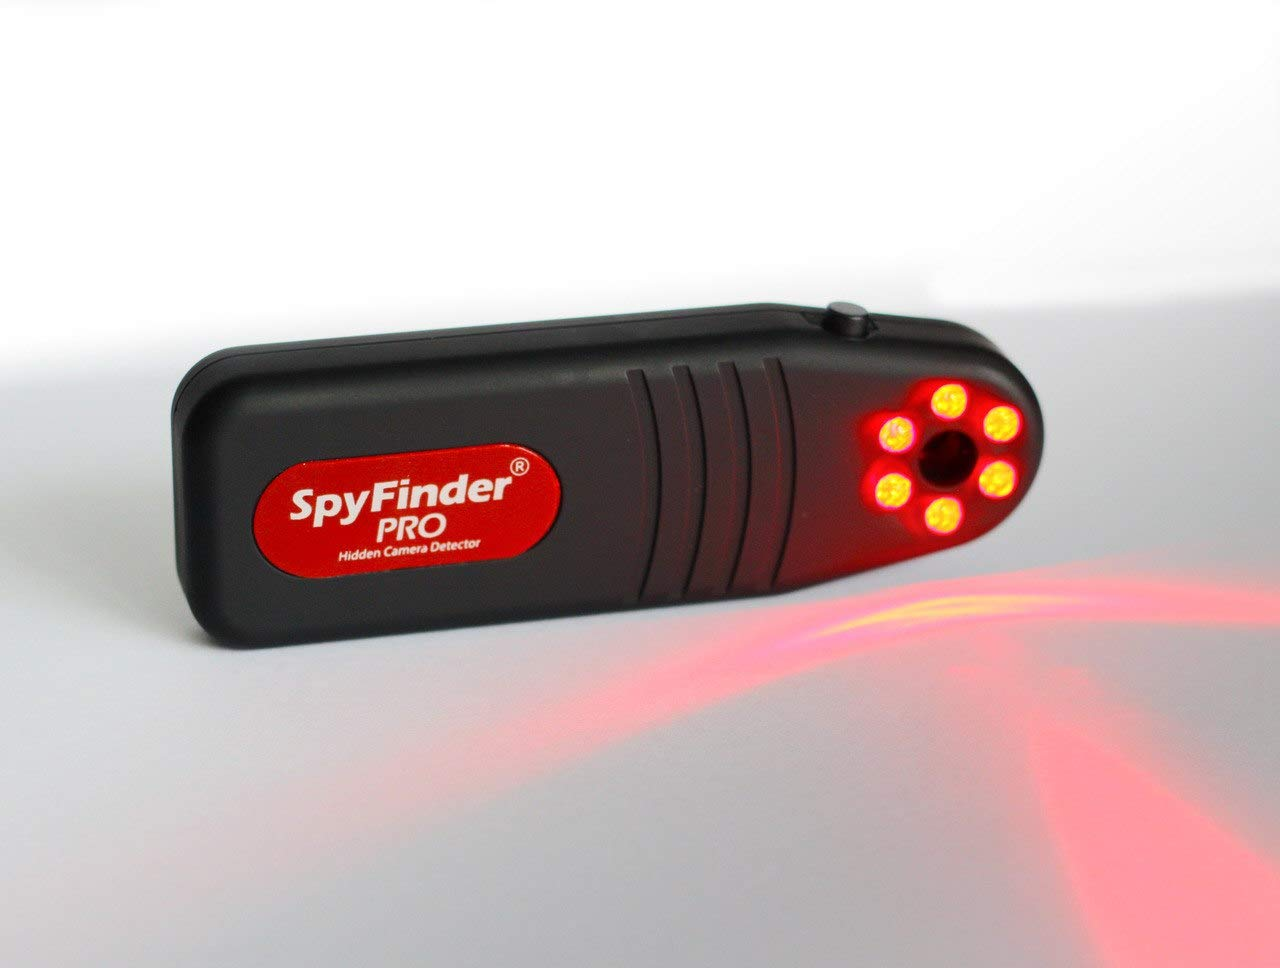 SPYFINDER PRO by KJB Security Finds Hidden Camera Lens Professional Detection Law Grade Portable Tool